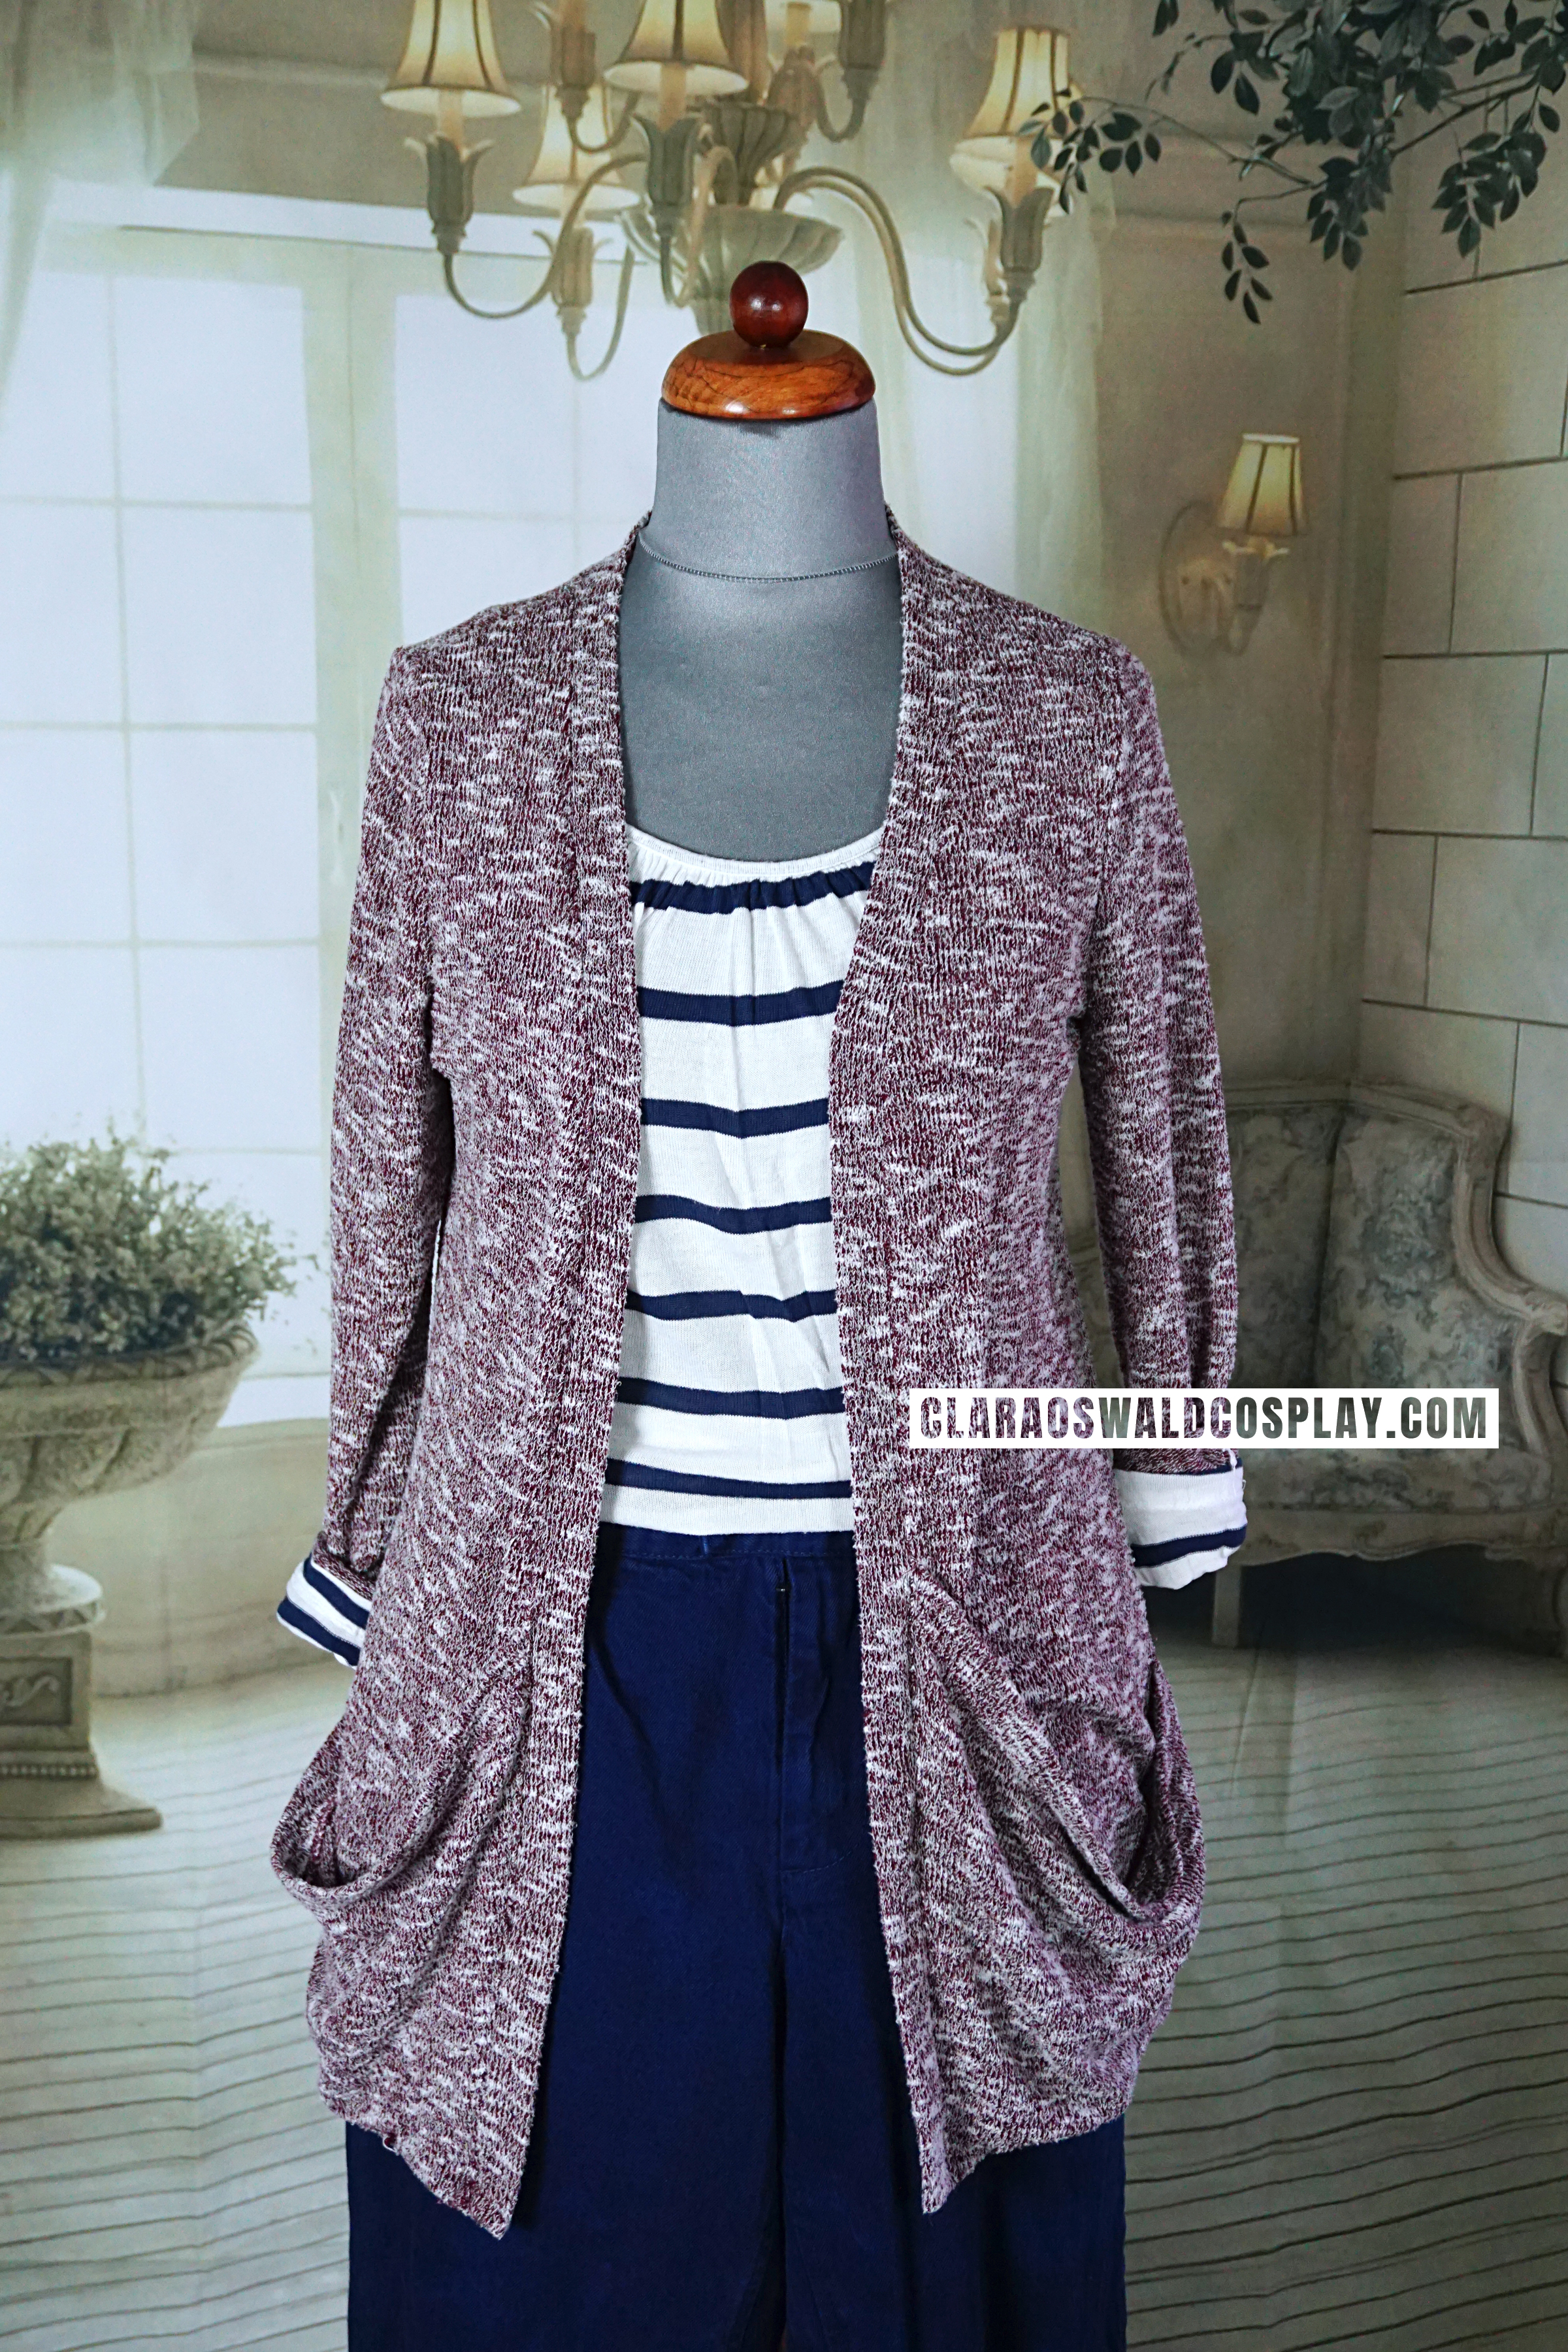 The pink version of the Urban Outfitters Sparkle & Fade Cardigan featured in Dark Water